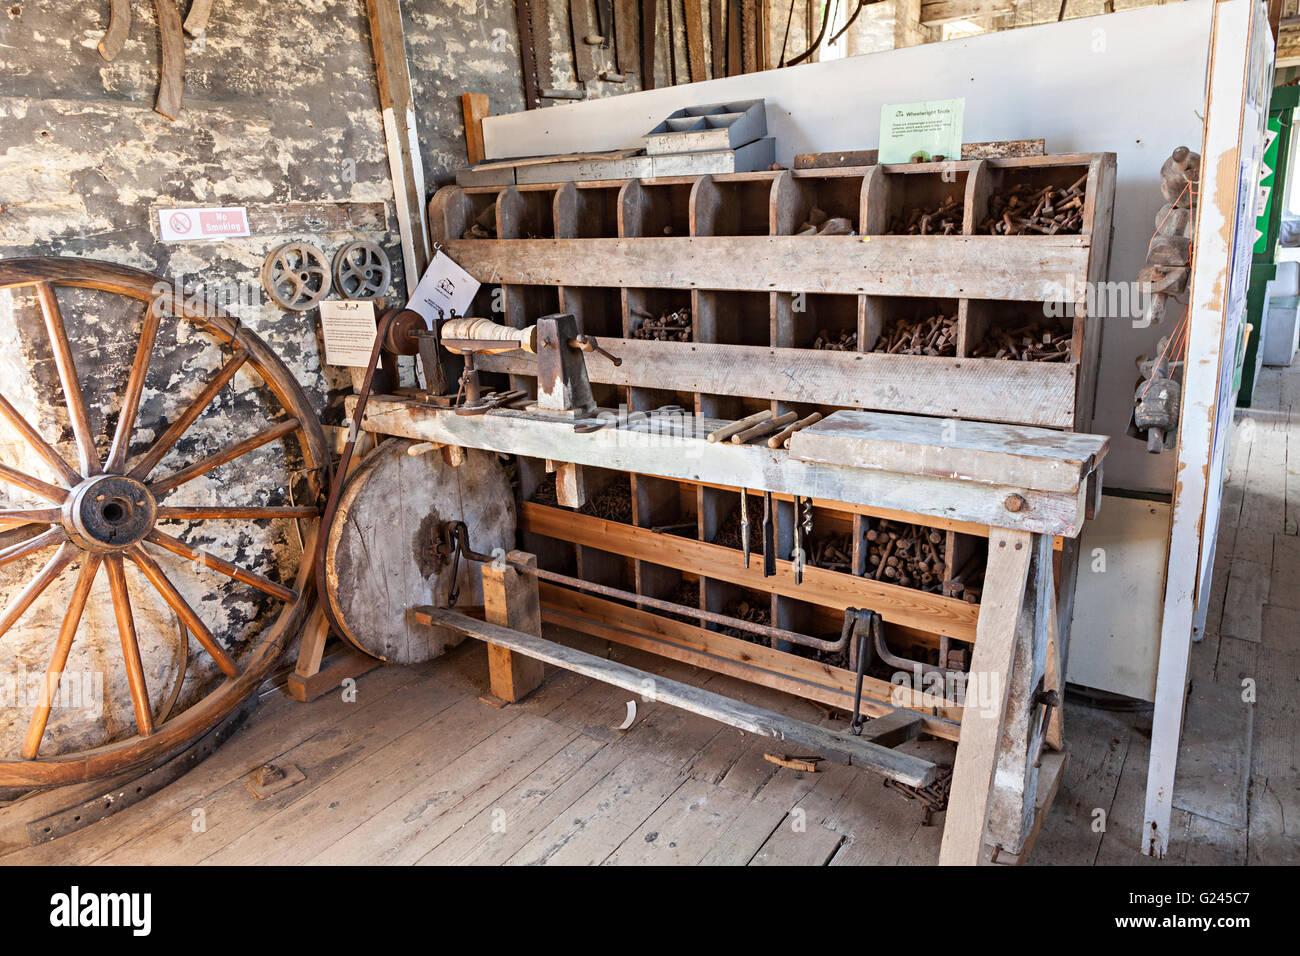 Foot-powered treadle lathe and workbench, Combe Mill, Oxfordshire, UK - Stock Image